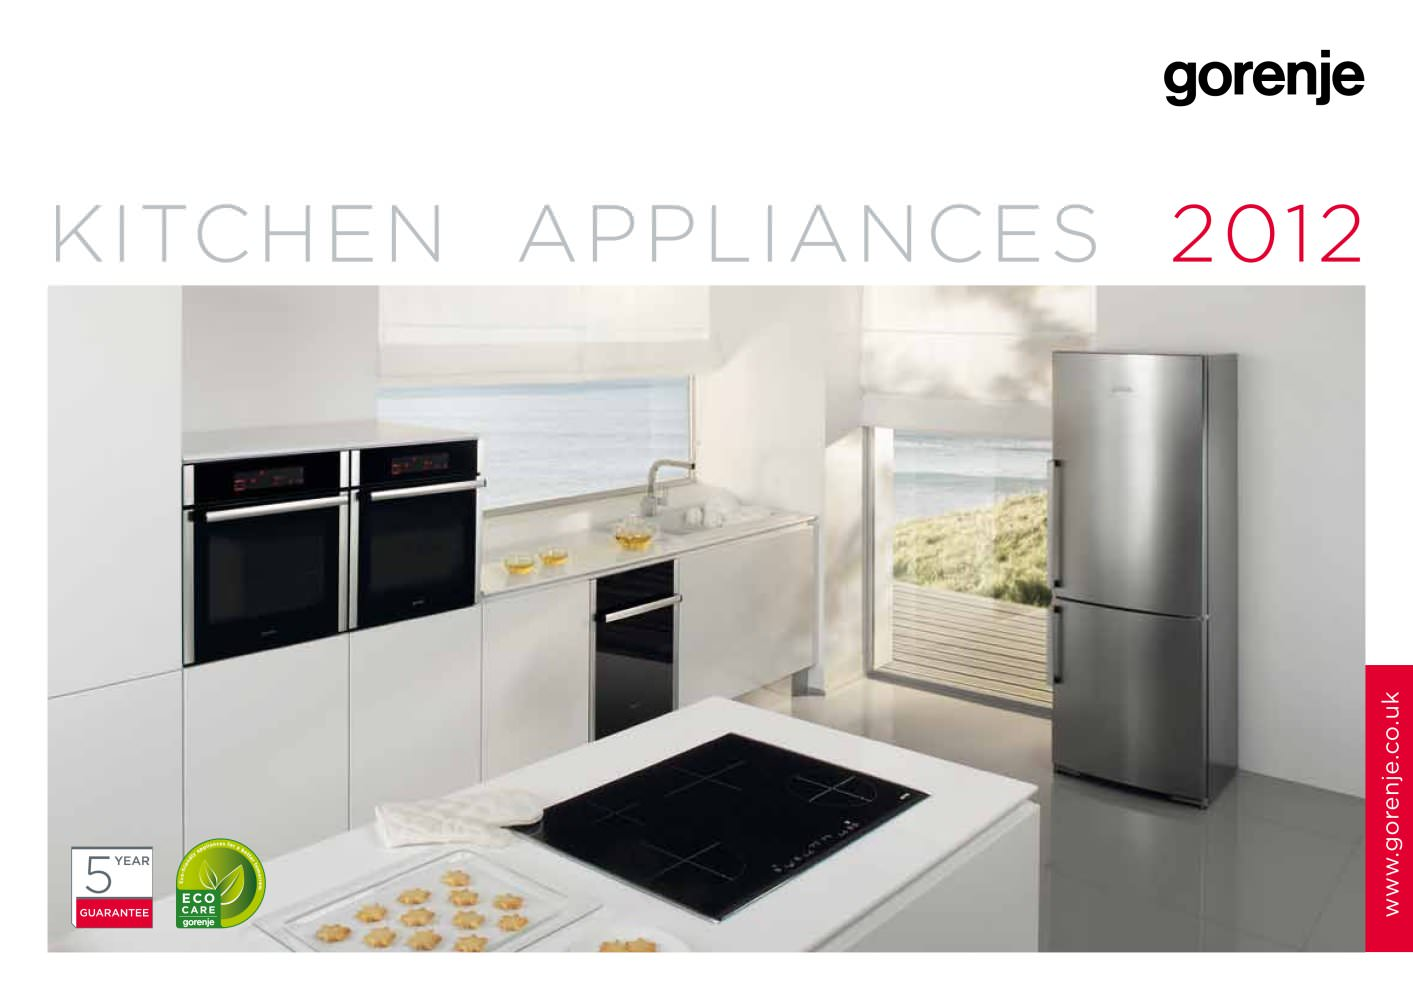 catalogue Kitchen appliances 2012 - GORENJE - PDF Catalogues ...